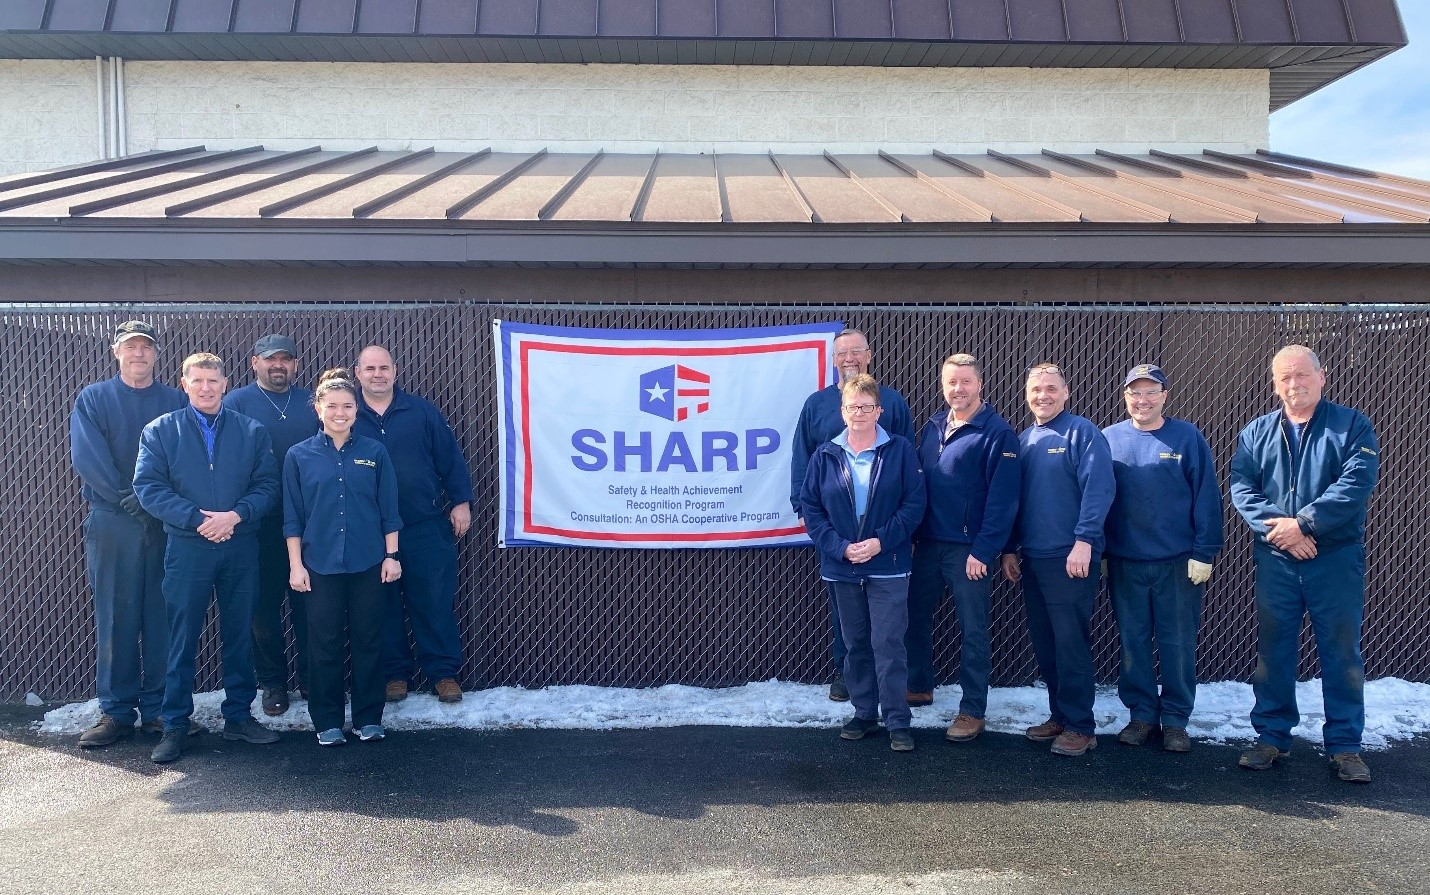 Warren Tire employees proudly celebrate SHARP accomplishment (from left to right): Dan Mulcahy, Chris Skogsberg, Bob Kellogg, Megan Kellog, Glen Wetherby, Rae Butler, Chad Sucese, Dan Mallory, Randy Facto, Scott Danahy, and Steve Larose.